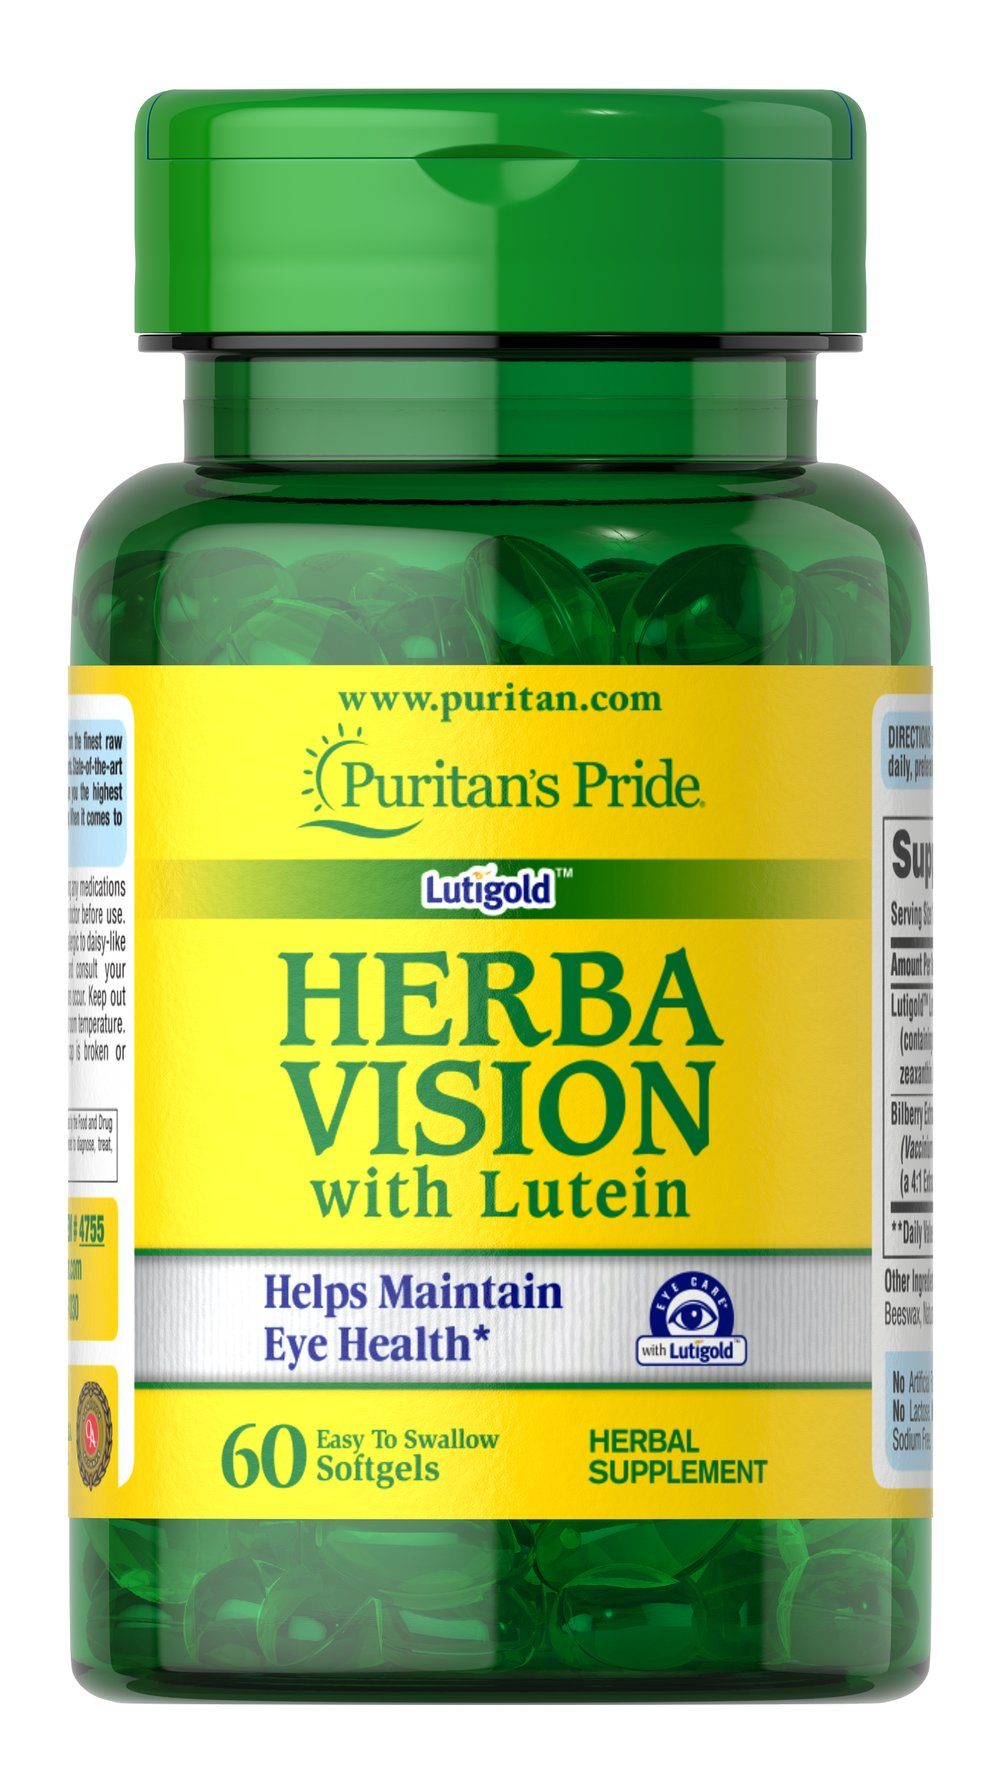 Herbavision with Lutein and Bilberry <p><strong>Nutritional support for your eyes**</strong></p><p>Contributes to clear, healthy vision**</p><p>Formulated with Lutigold™ Lutein, derived from pure, natural sources</p><p>Contains naturally occurring protective antioxidants and active carotenoids, such as Zeaxanthin, for synergistic support**</p><p>Comes in convenient, easy-to-swallow softgels</p> 60 Softgels  $12.49